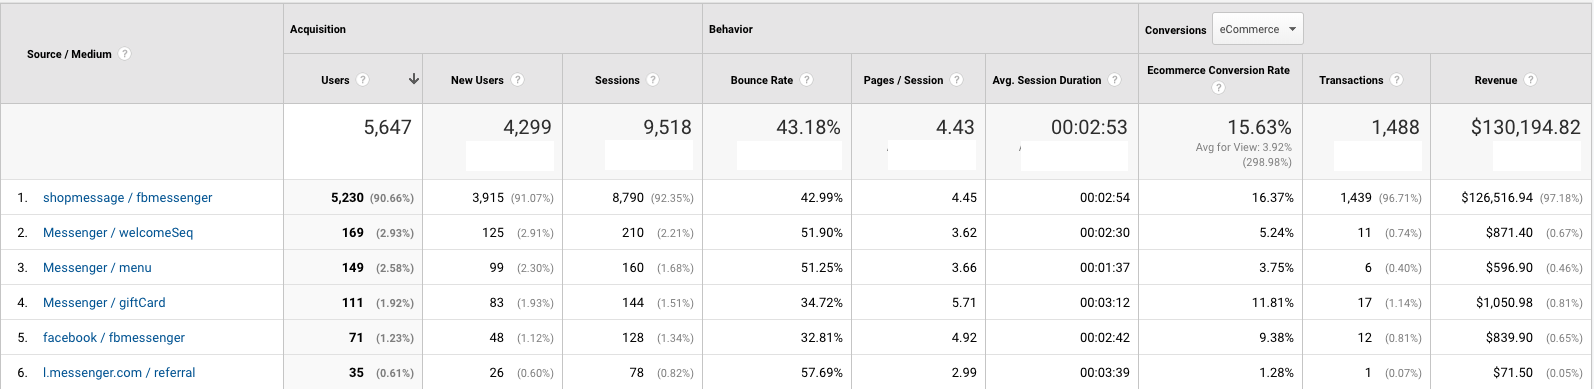 Facebook Messenger marketing conversion rates